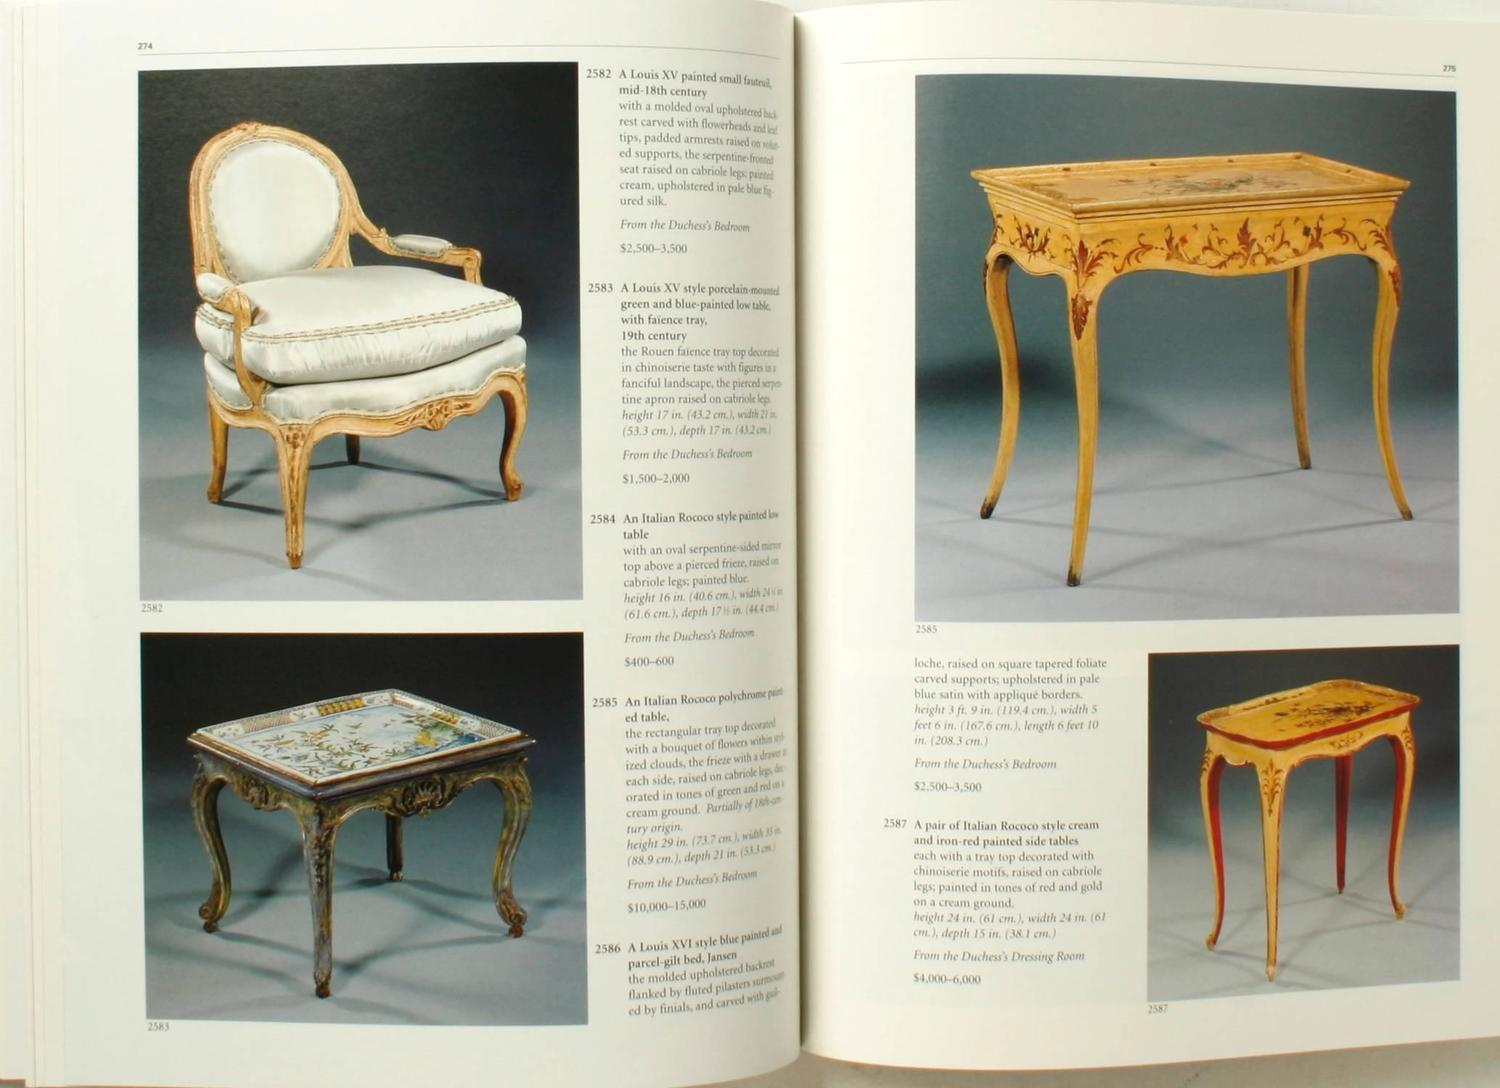 Sothebyu0027s Catalogues From The Duke And Duchess Of Windsor Auction At 1stdibs